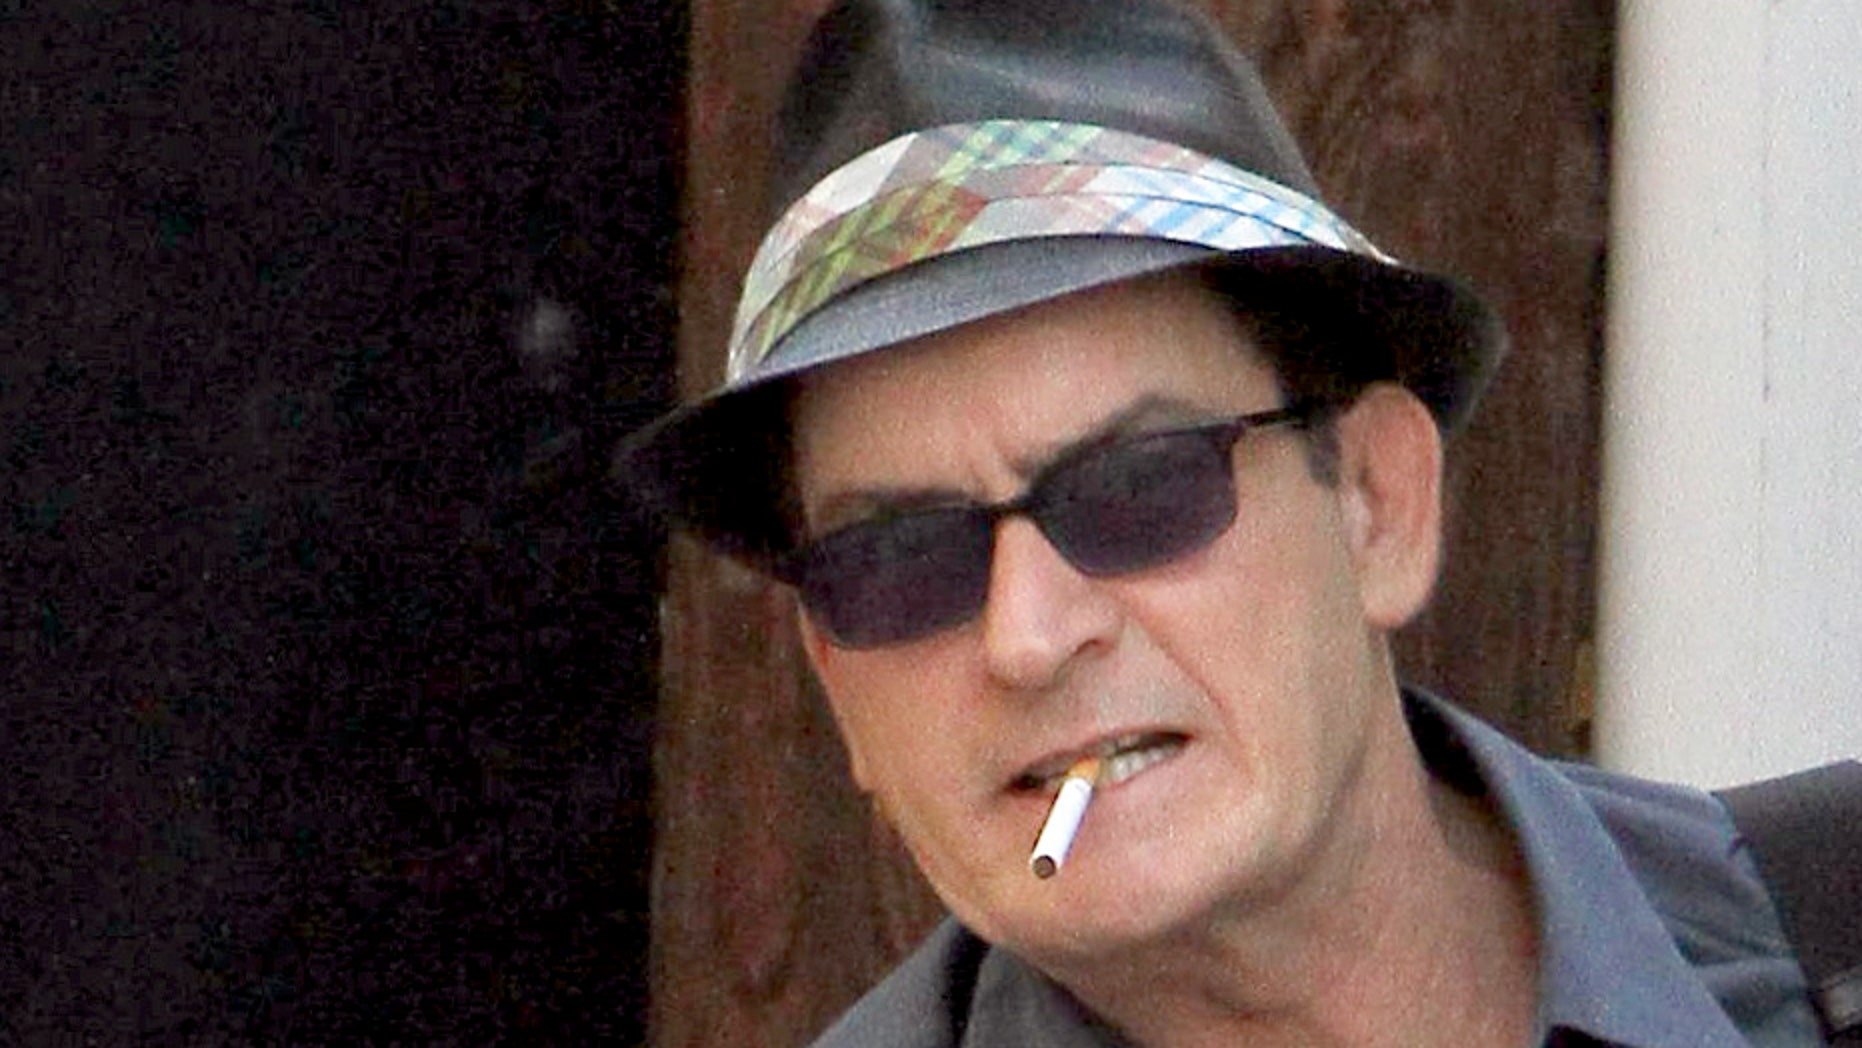 """Charlie Sheen filming a cameo for the independent comedy, """"She Wants Me"""". The film co-stars Hilary Duff.. October 28, 2010. X17online.com"""